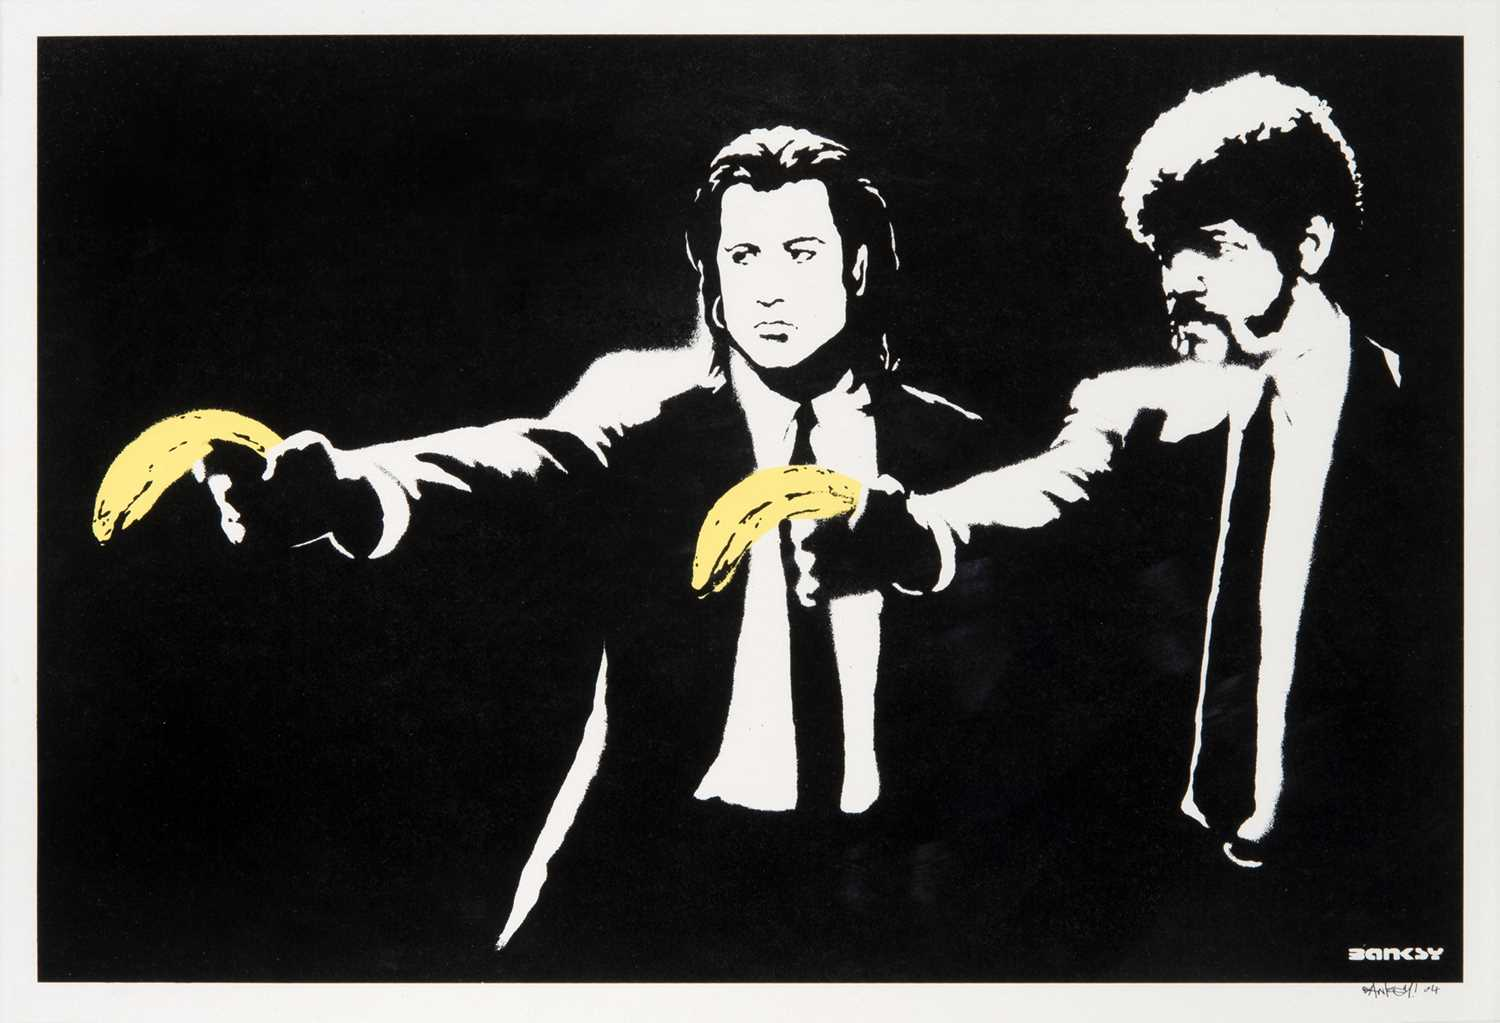 Lot 82 - Banksy (British 1974-), 'Pulp Fiction', 2004